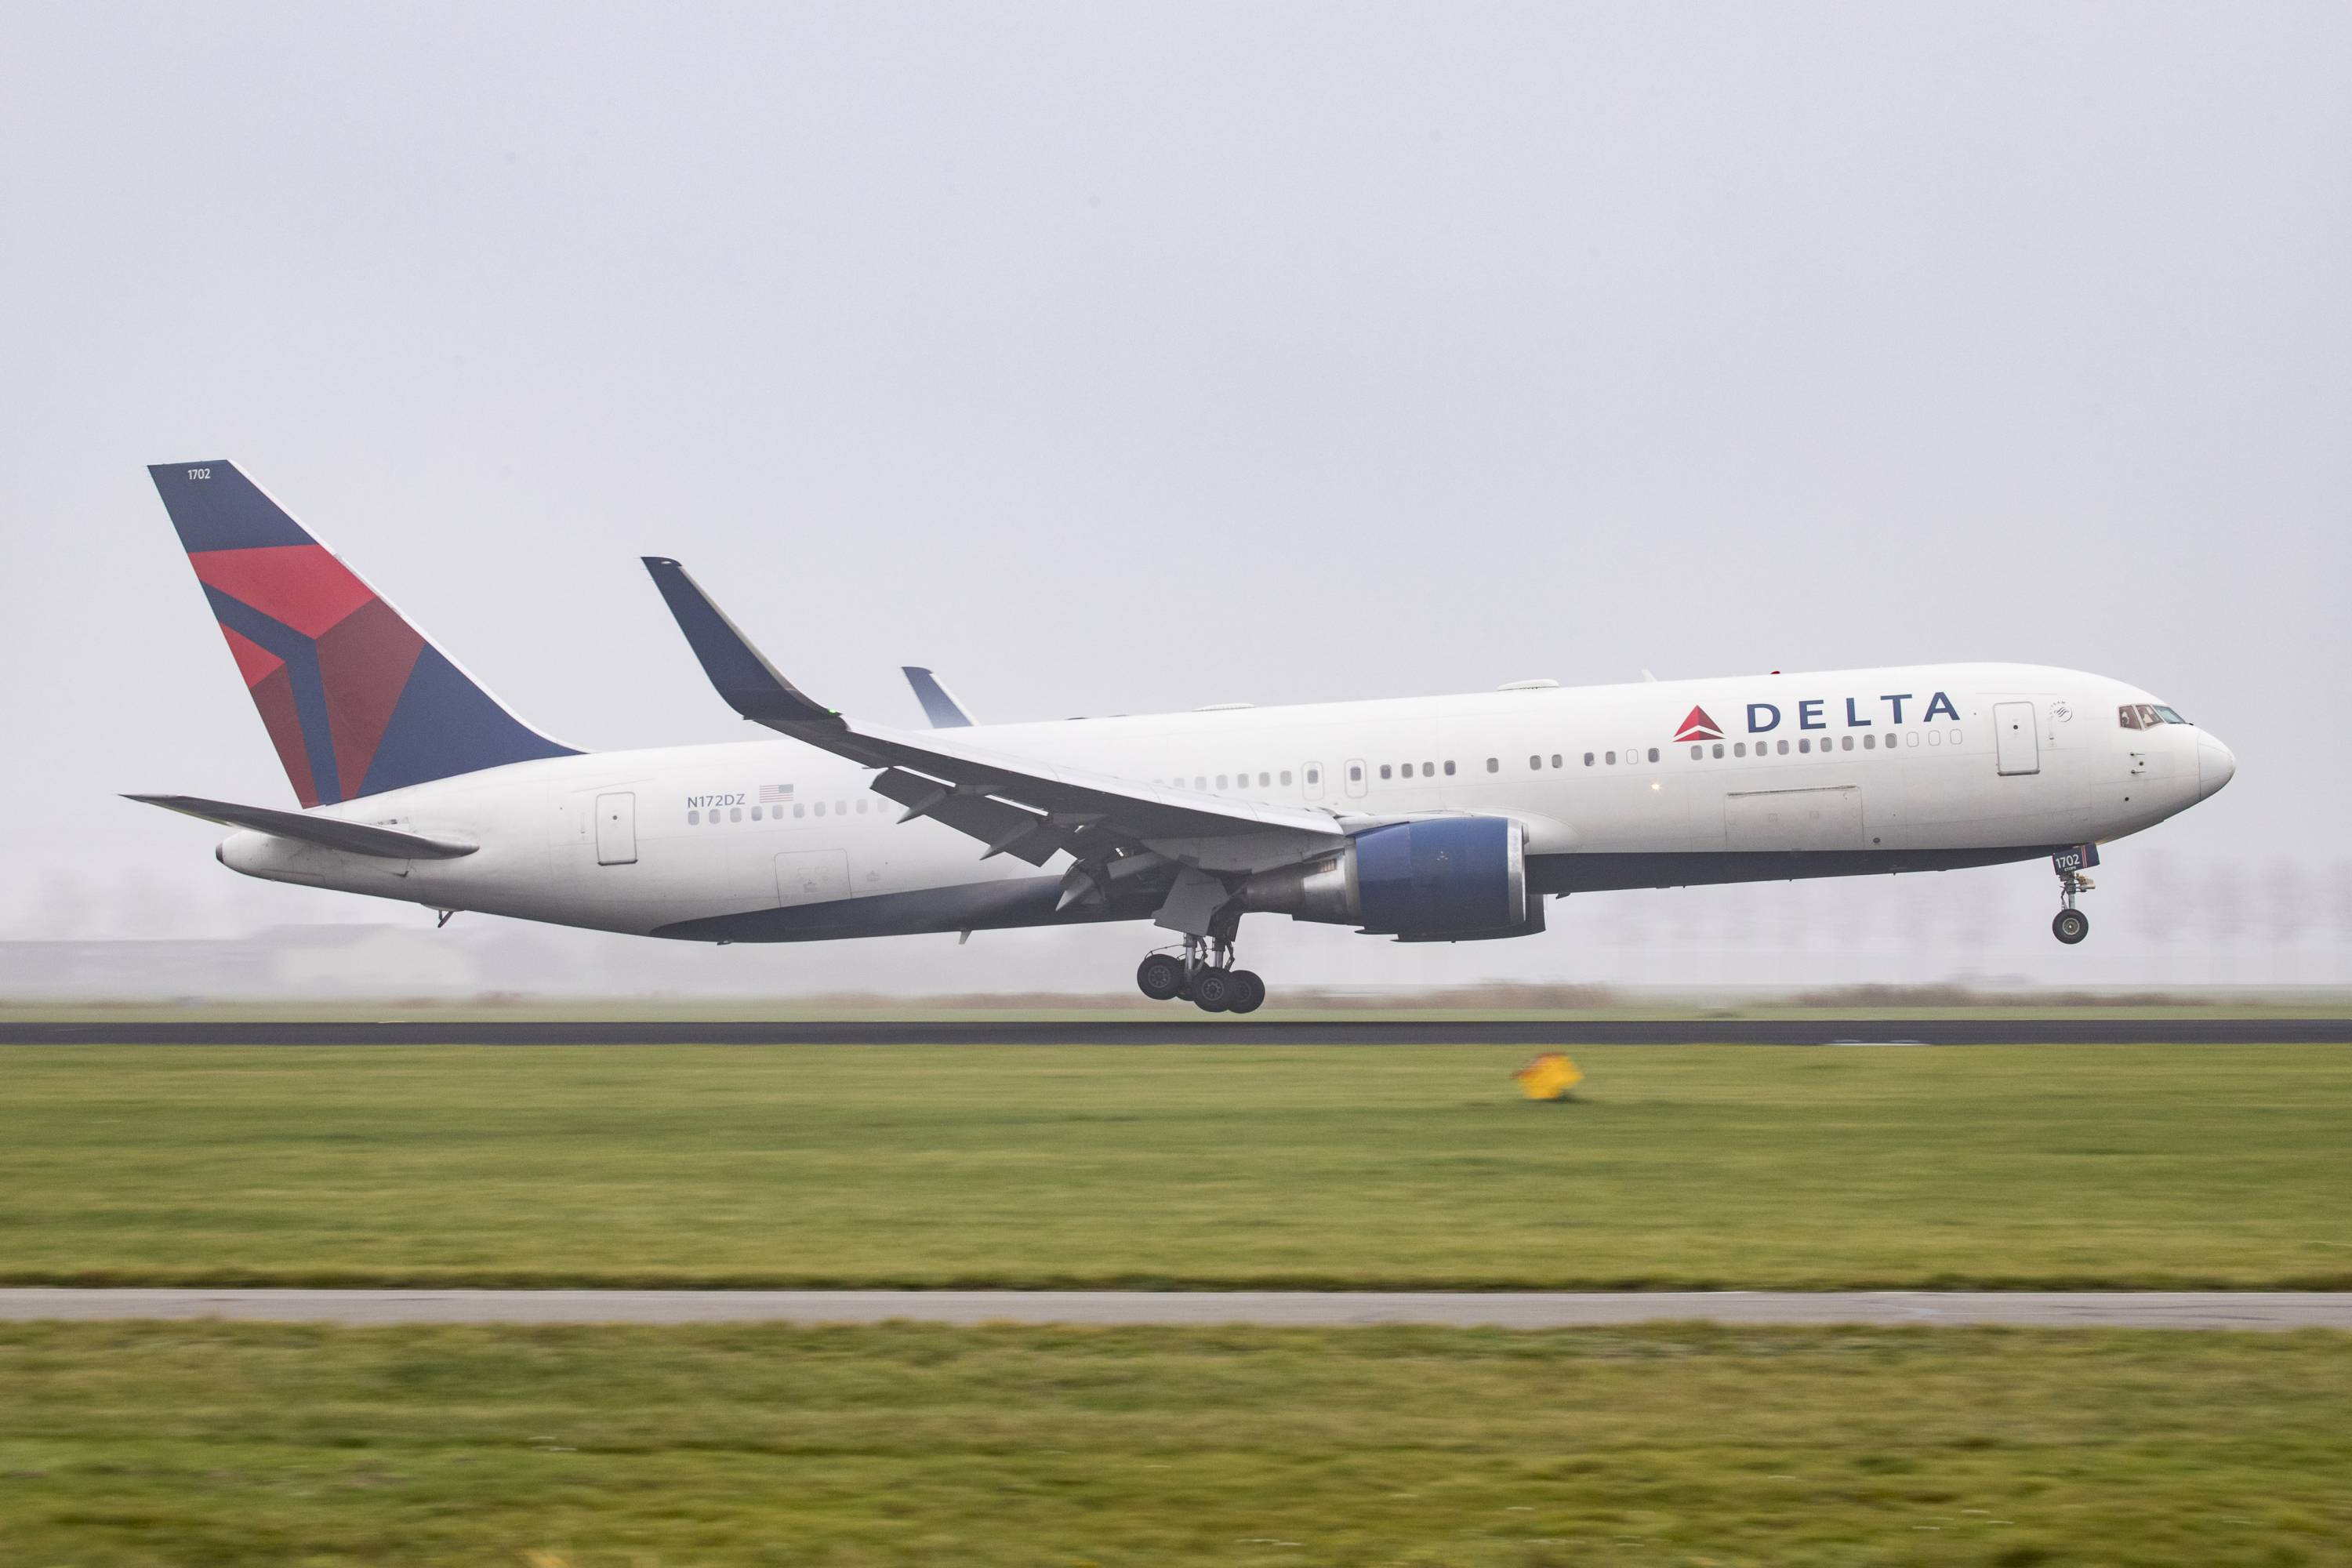 Delta Air Lines Boeing 767-300 seen landing at Amsterdam